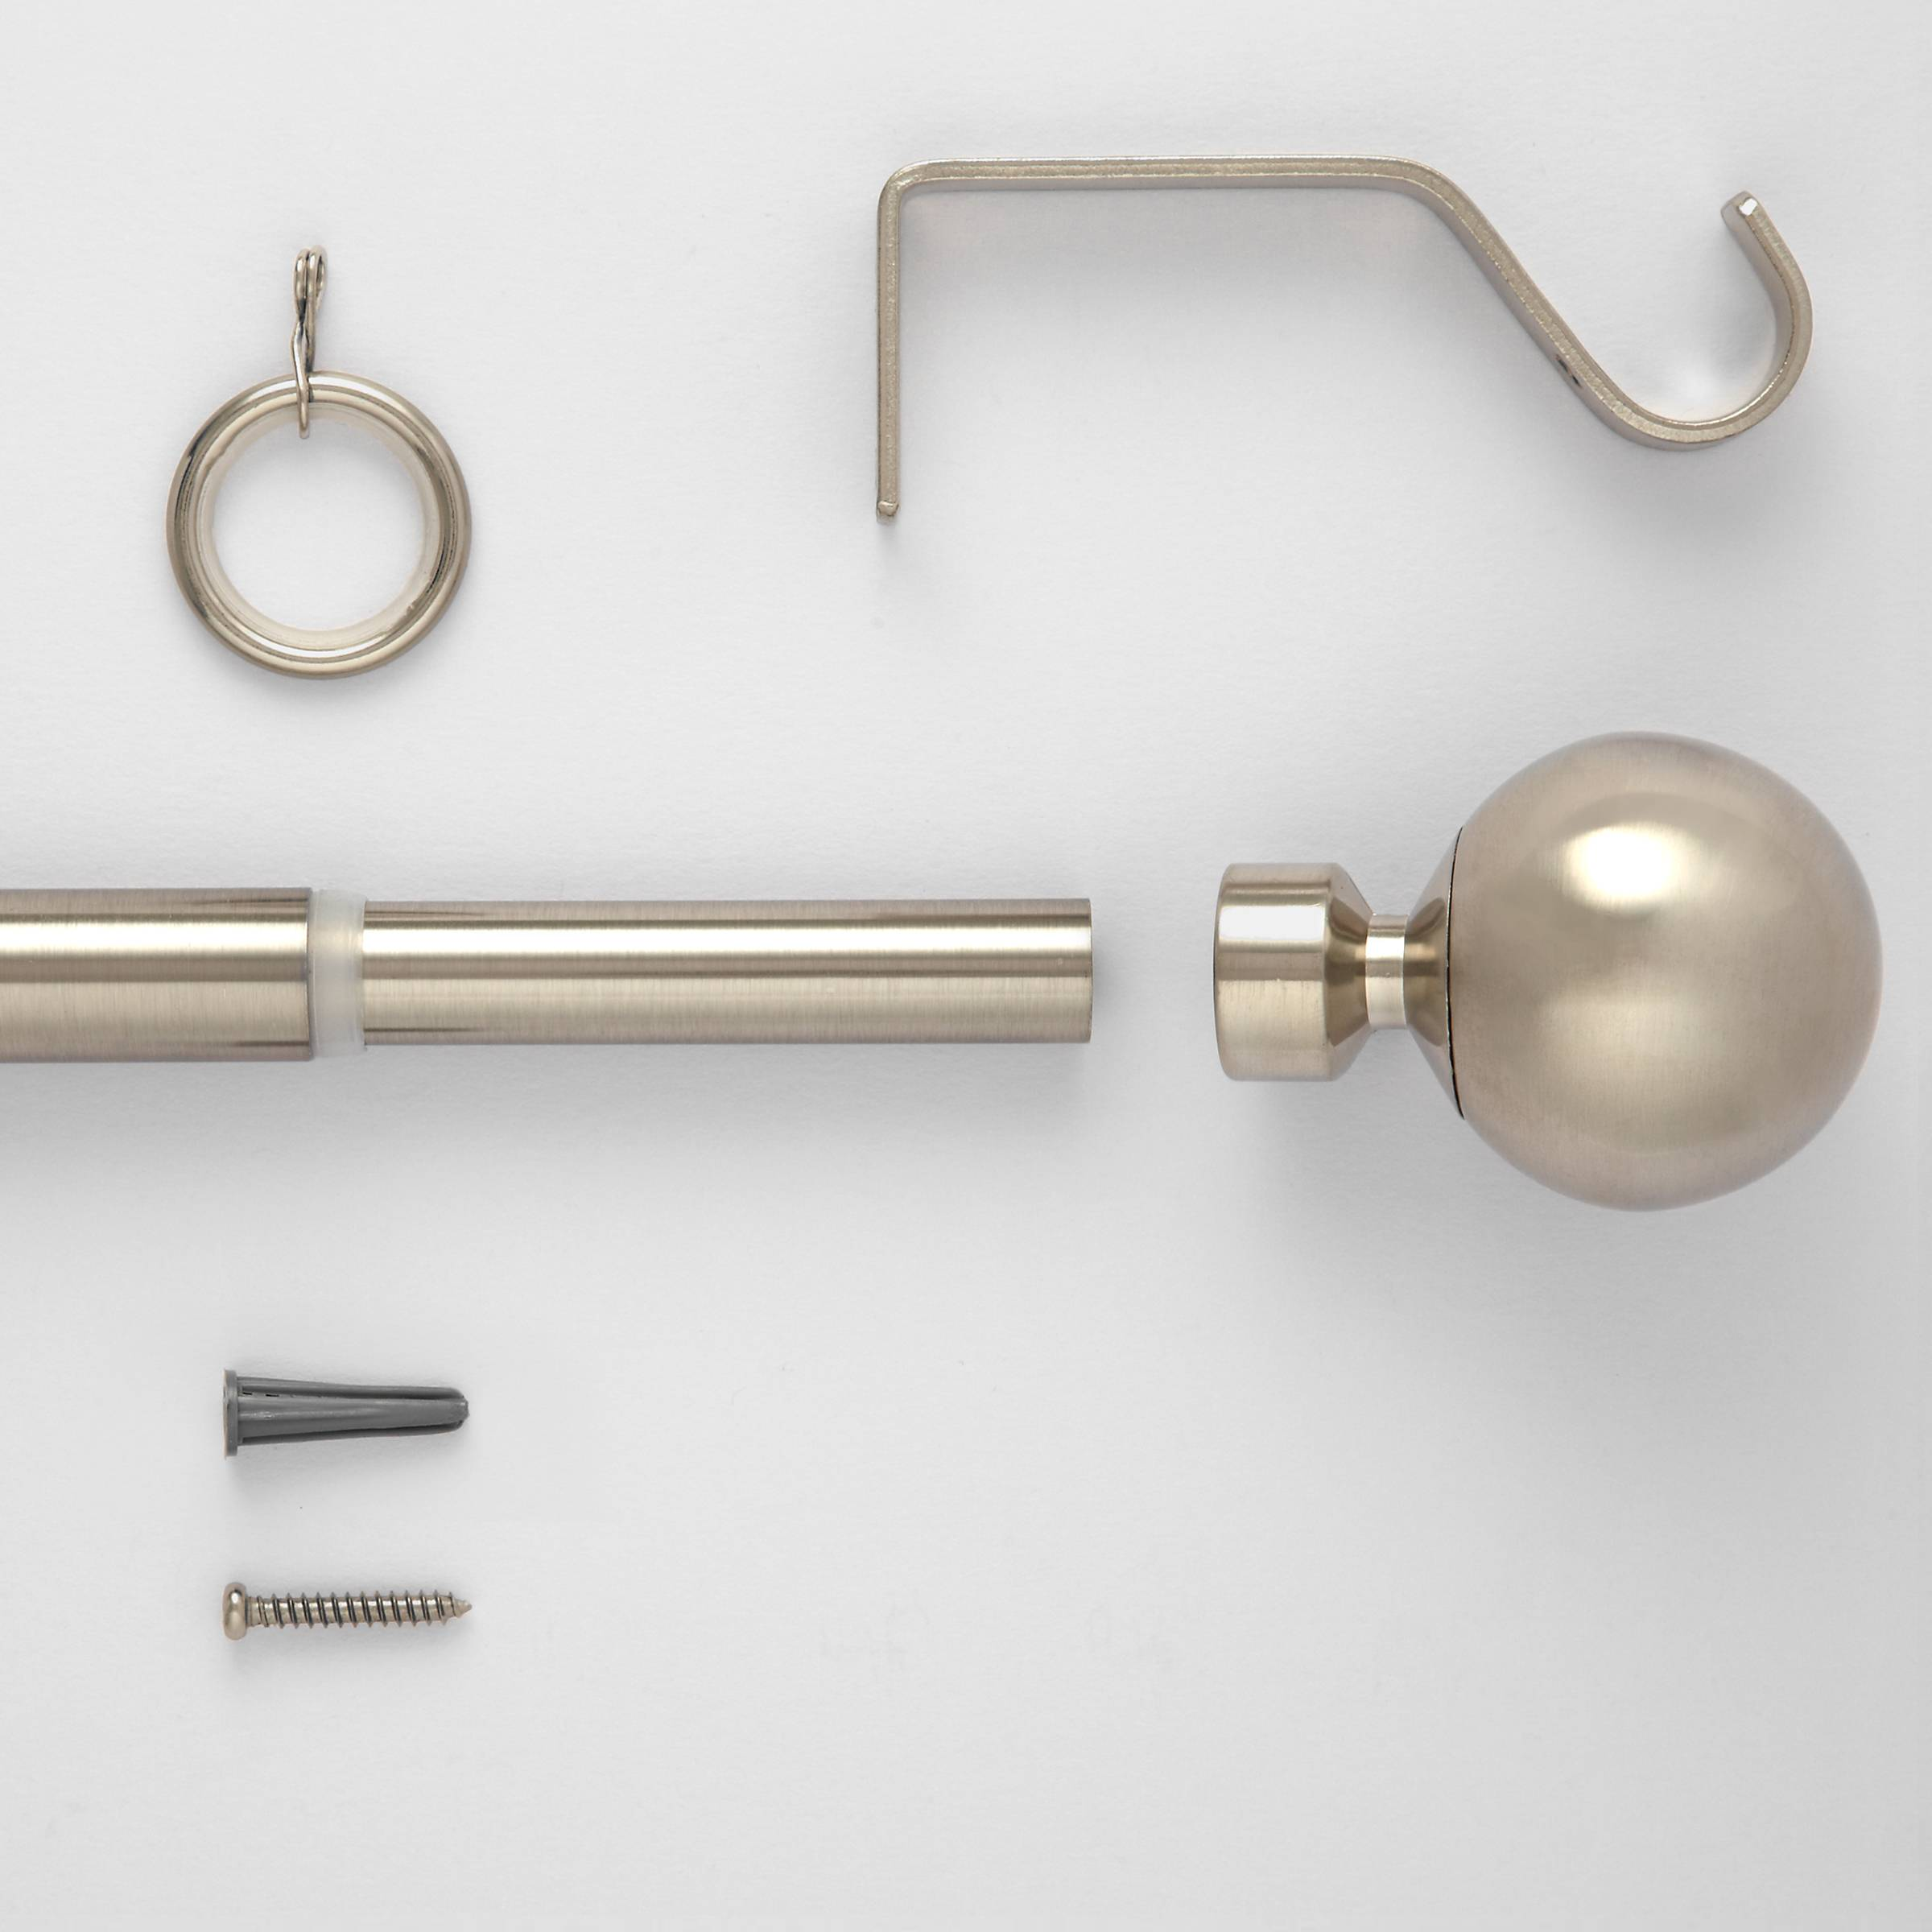 Curtain pole kits